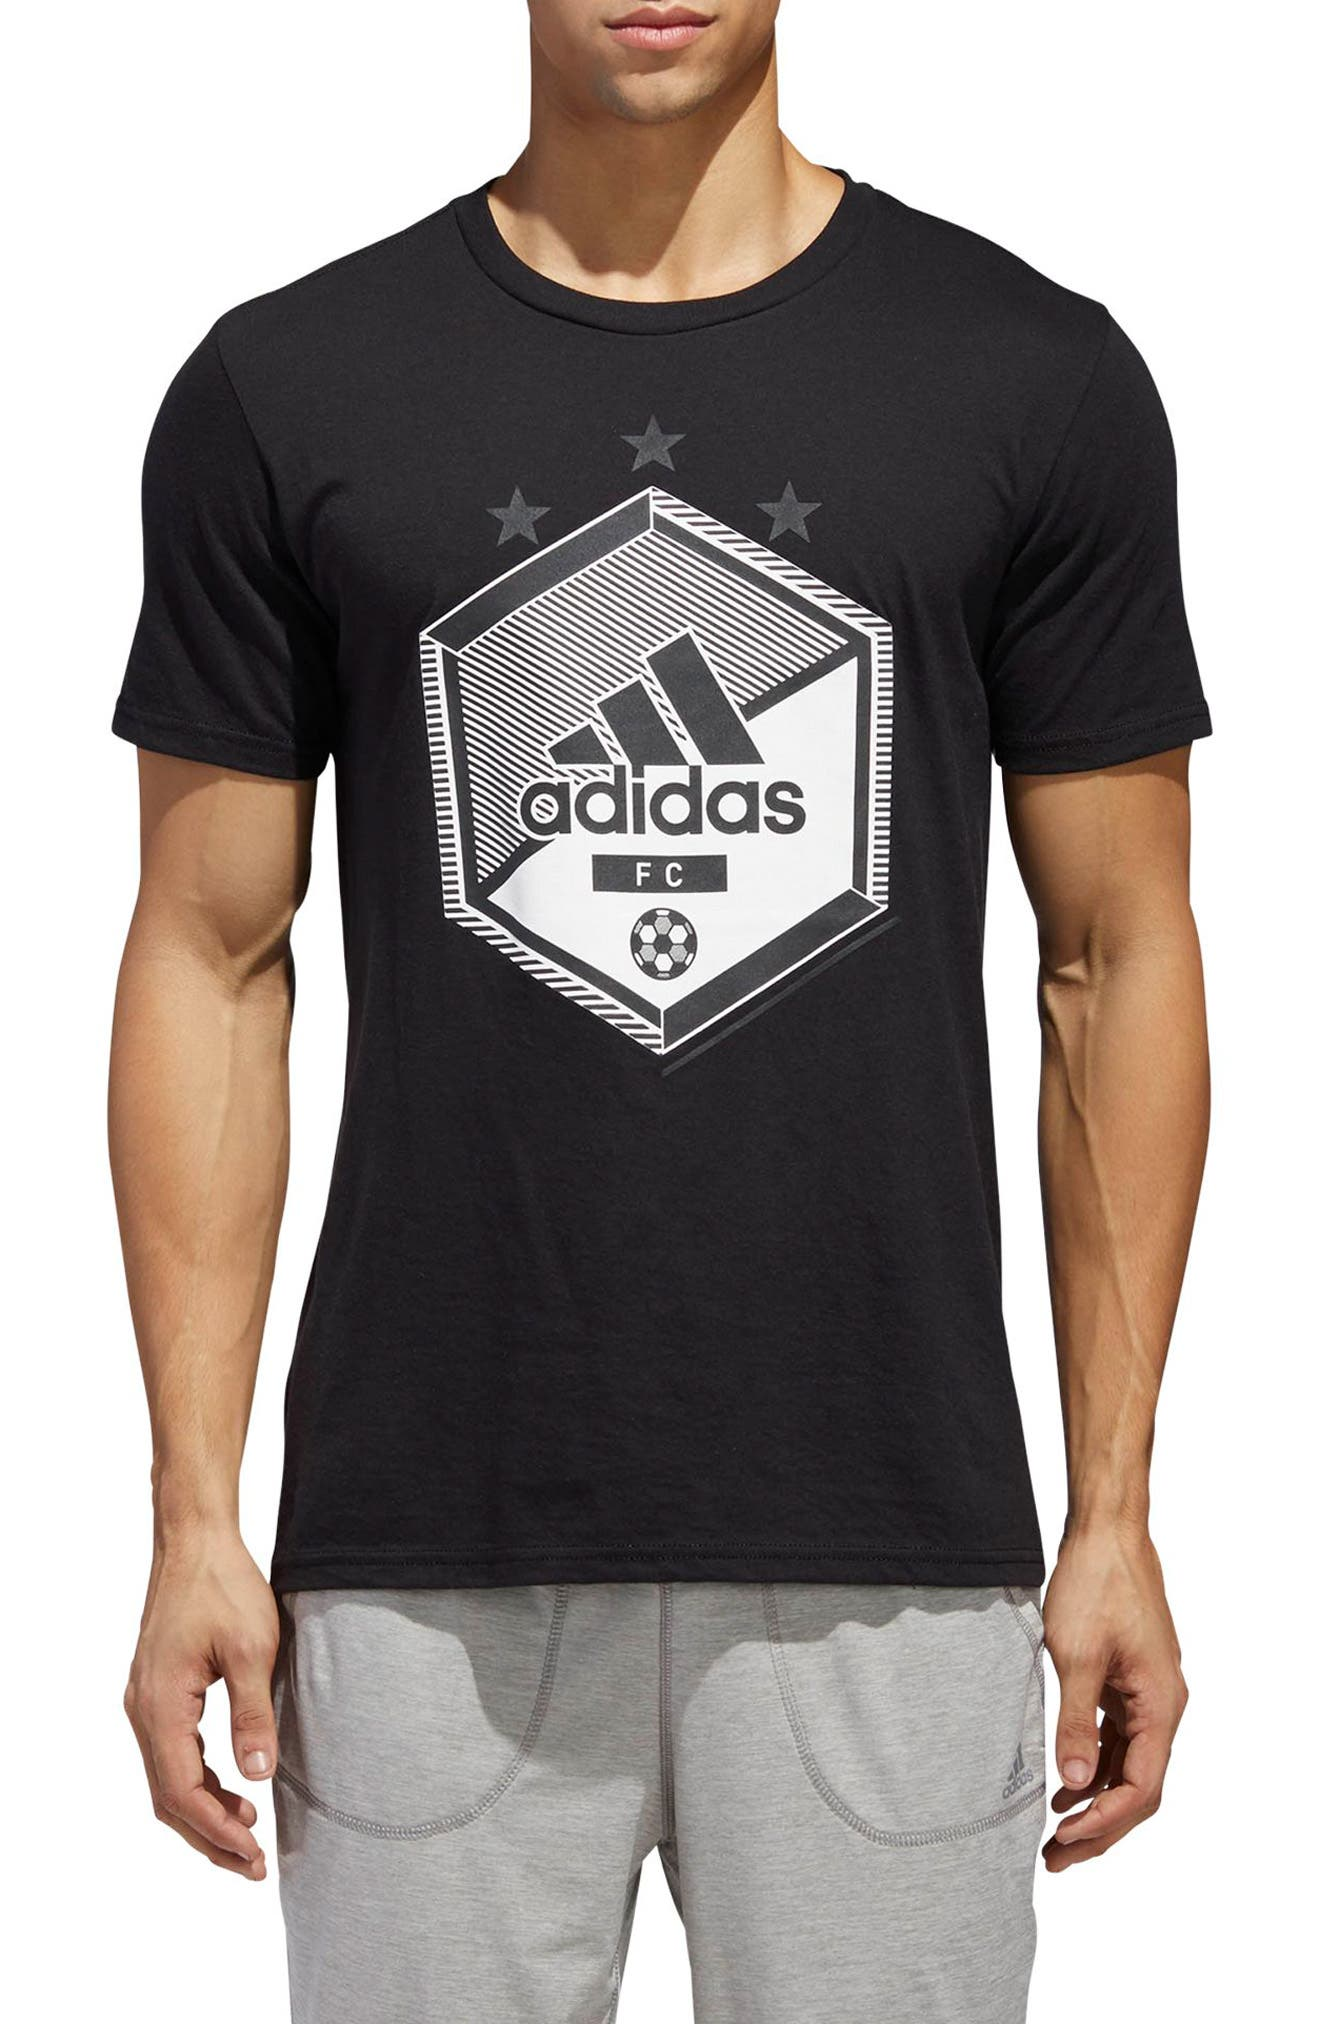 adidas Slim Fit Soccer Graphic T-Shirt